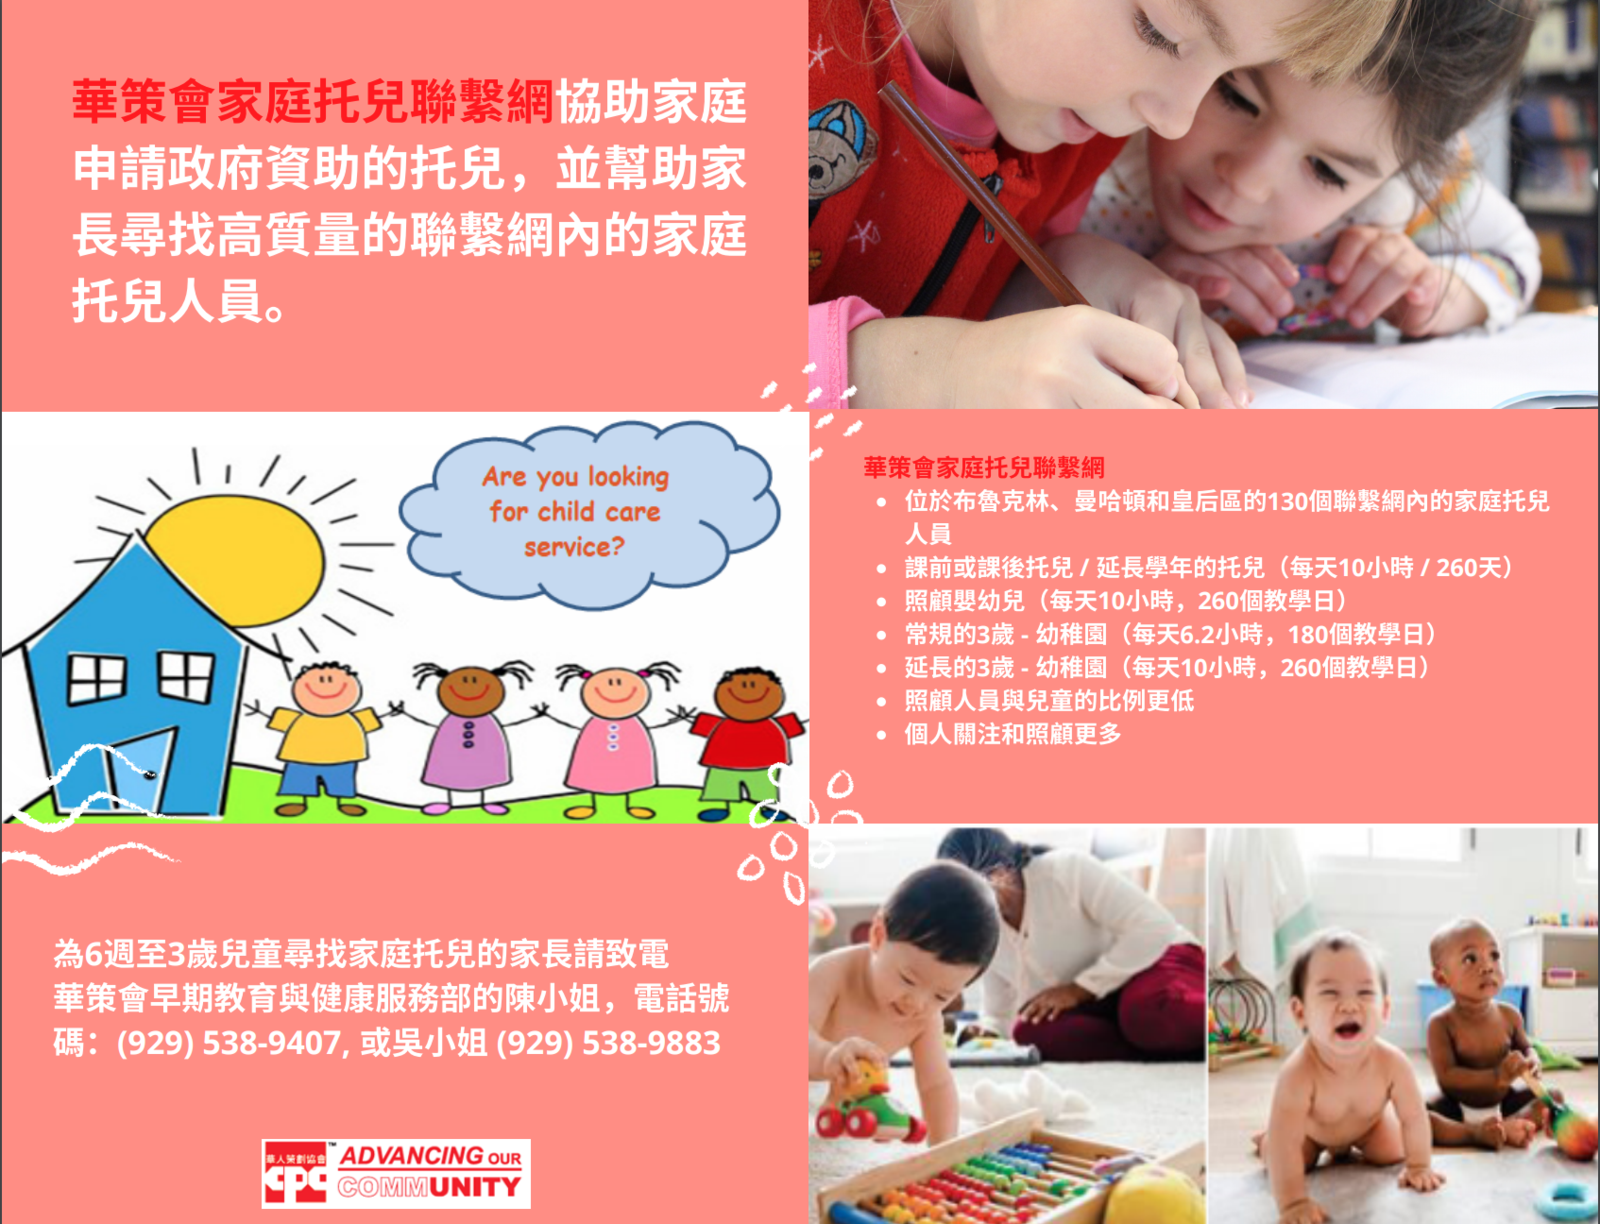 Family Child Care Network Flyer in Chinese